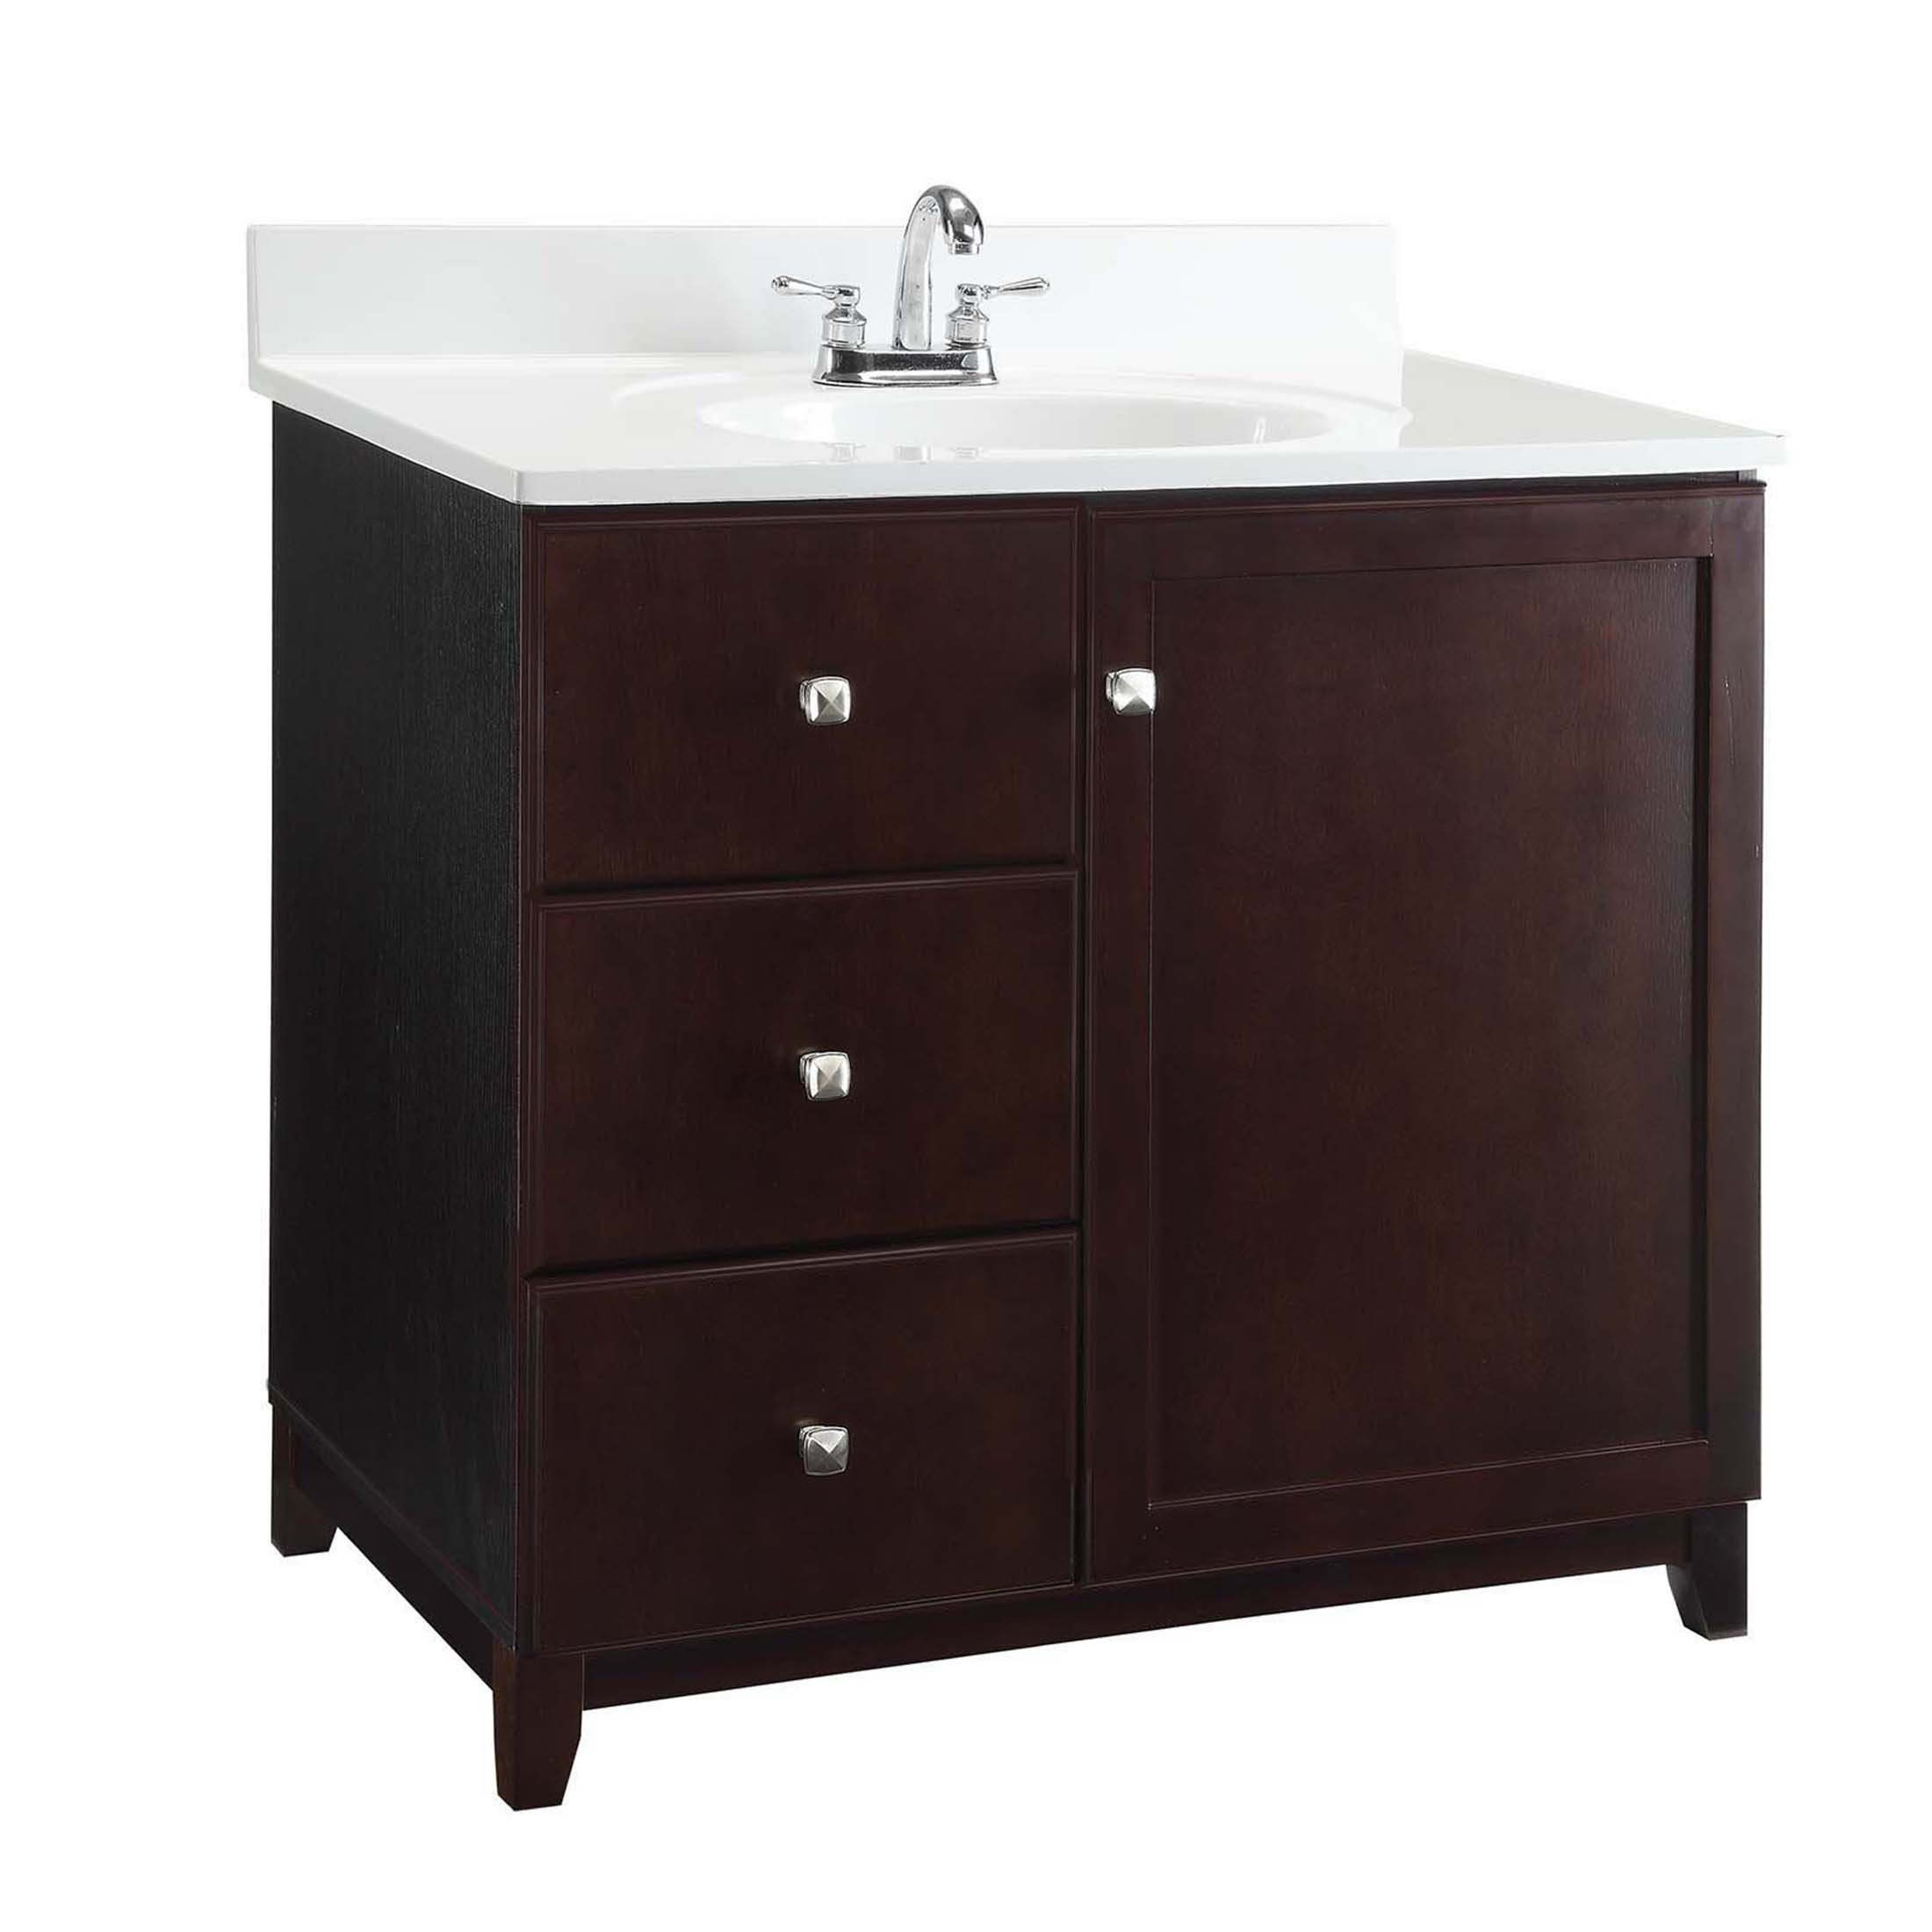 Design house 23 vanity cabinet wayfair - Wayfair furniture bathroom vanities ...